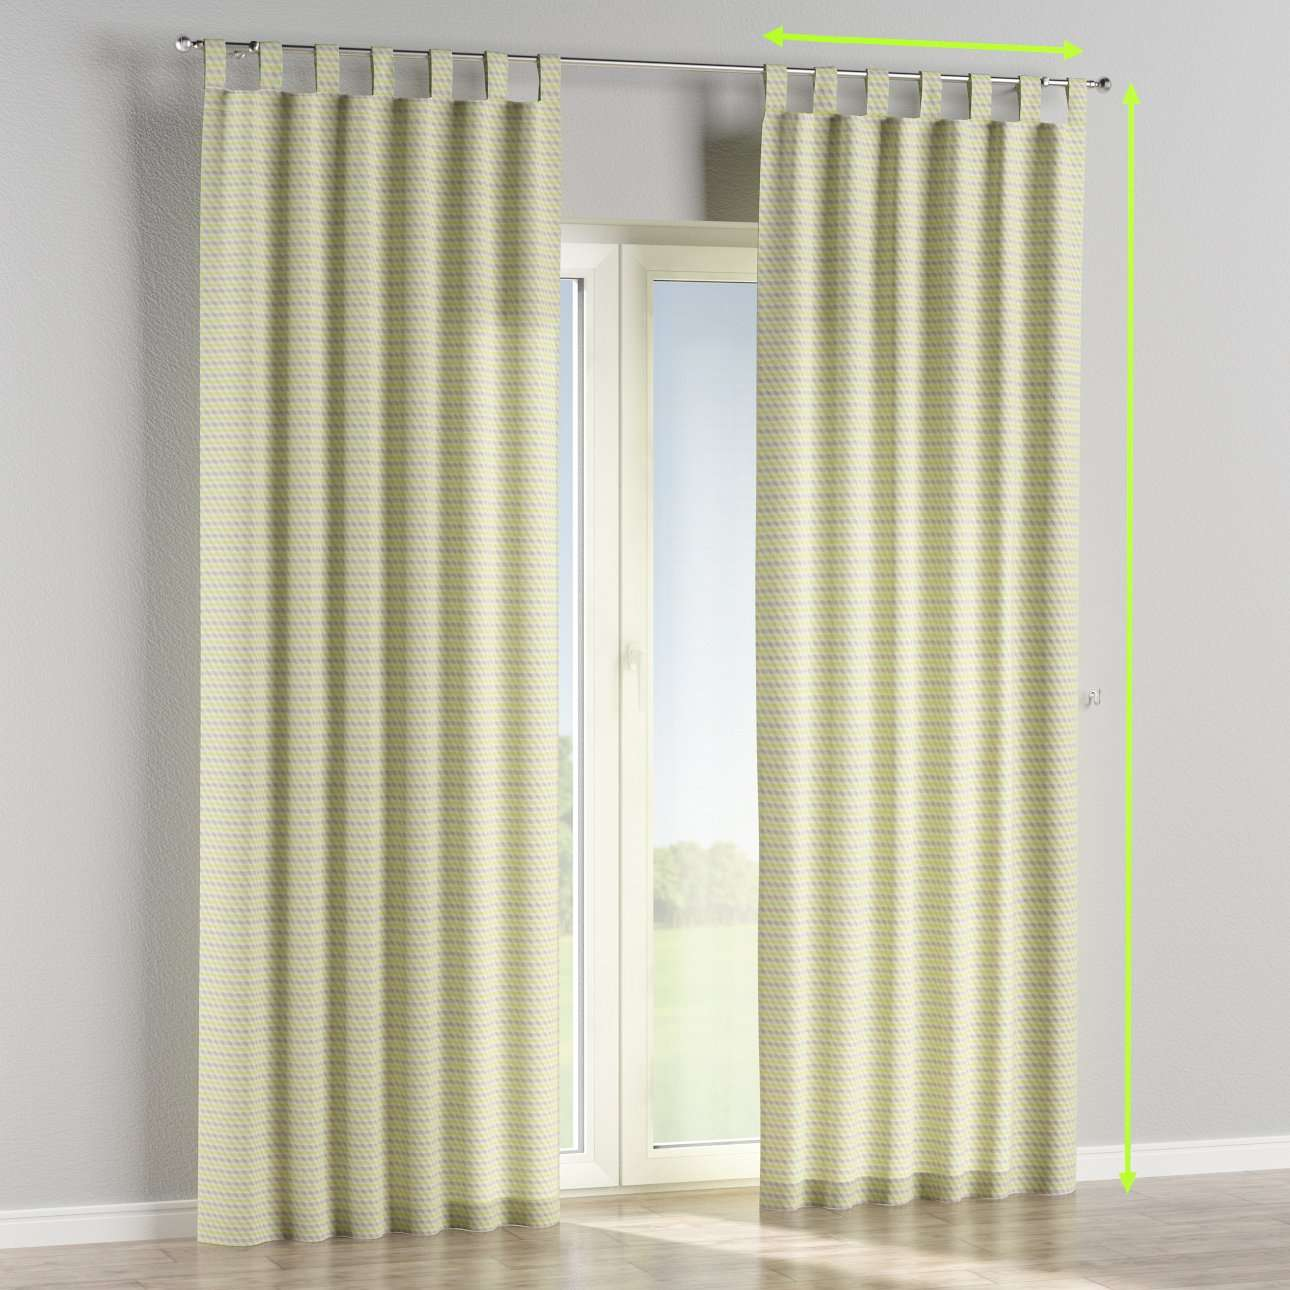 Tab top lined curtains in collection Rustica, fabric: 140-36